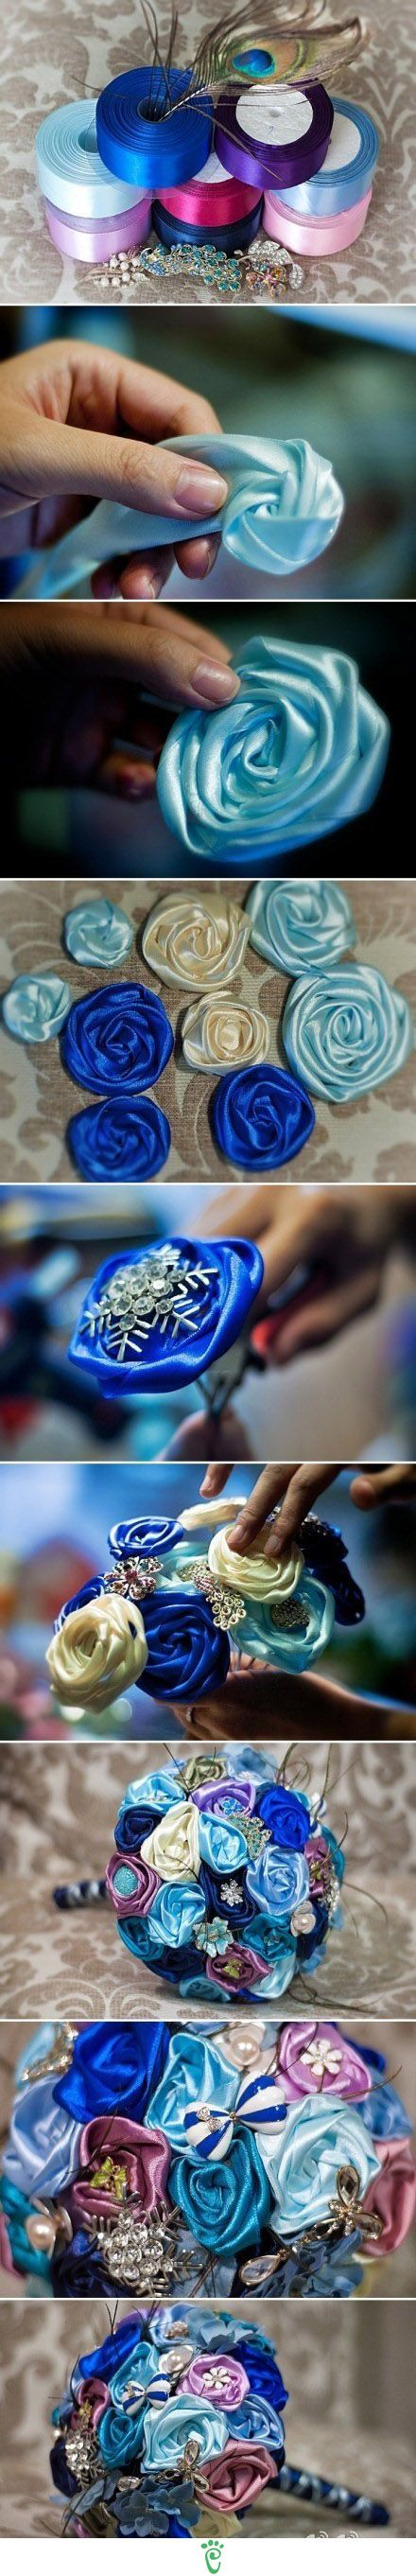 Diy Ribbon Flower Bouquet Pictures Photos And Images For Facebook